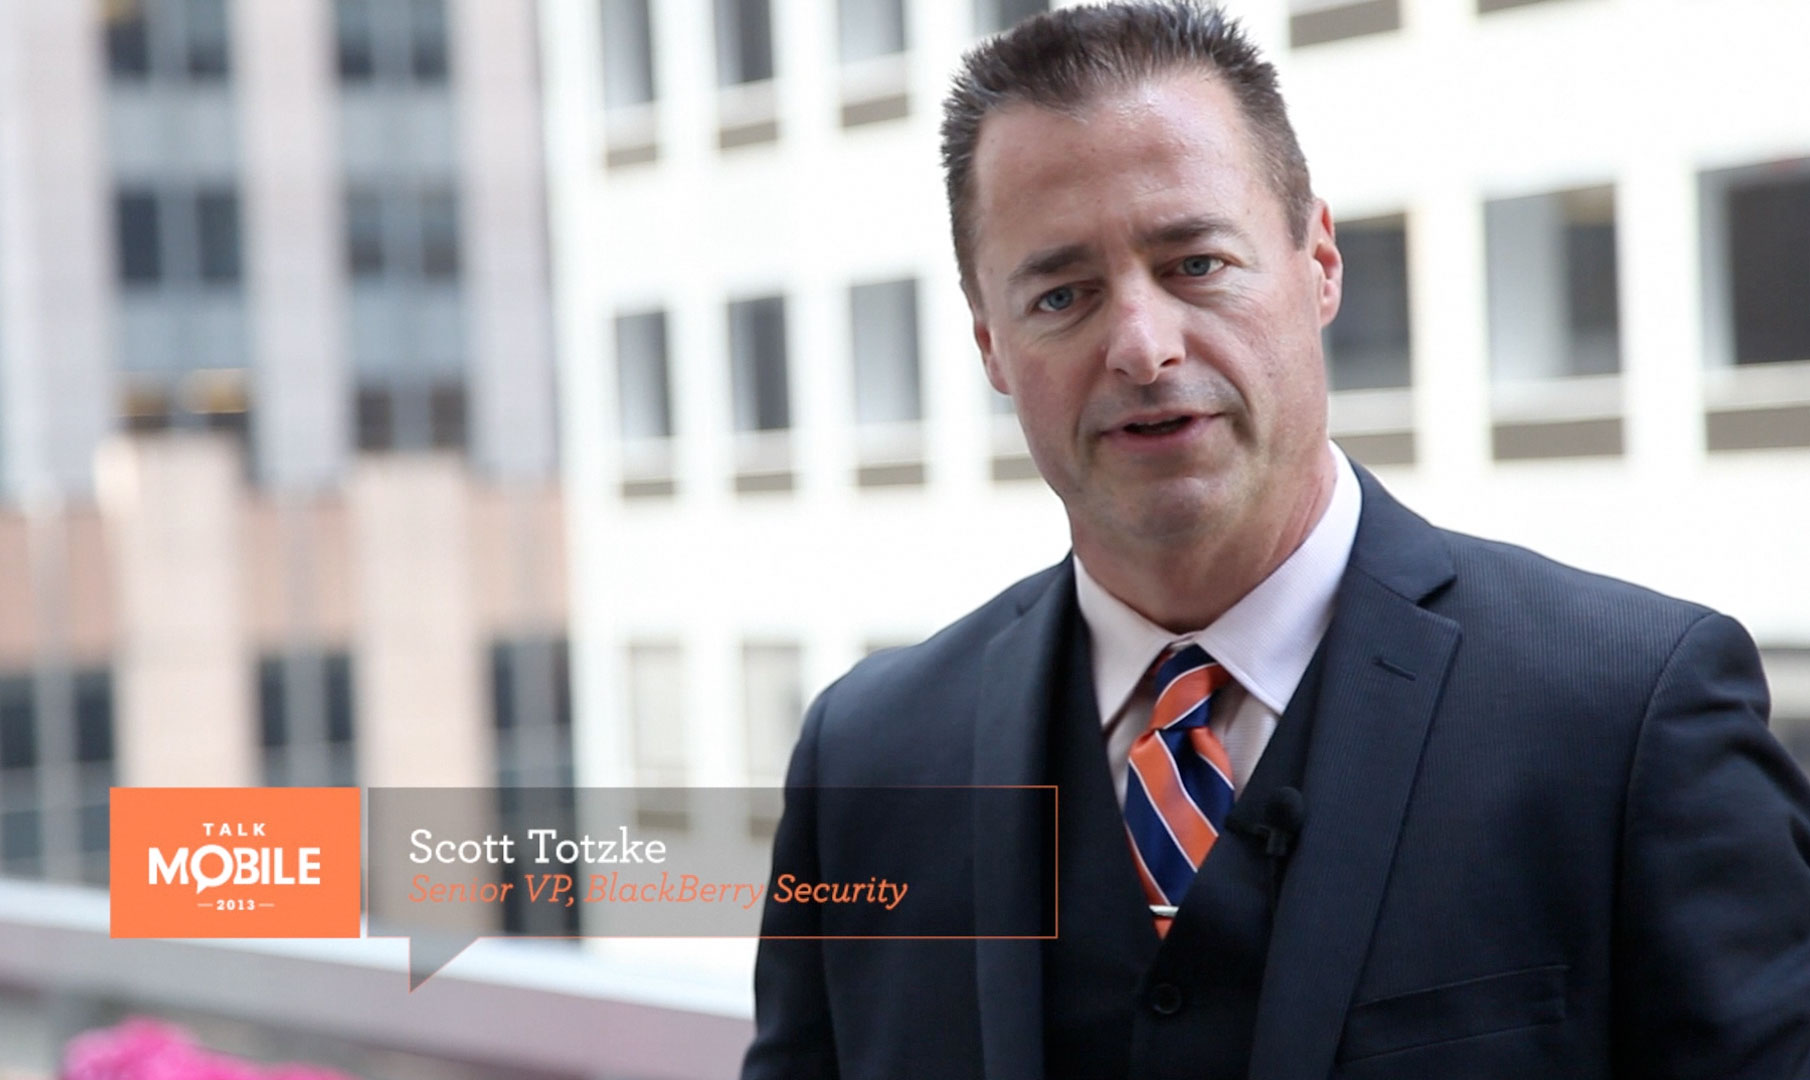 Scott Totzke on balancing personal fun with professional security - Talk Mobile